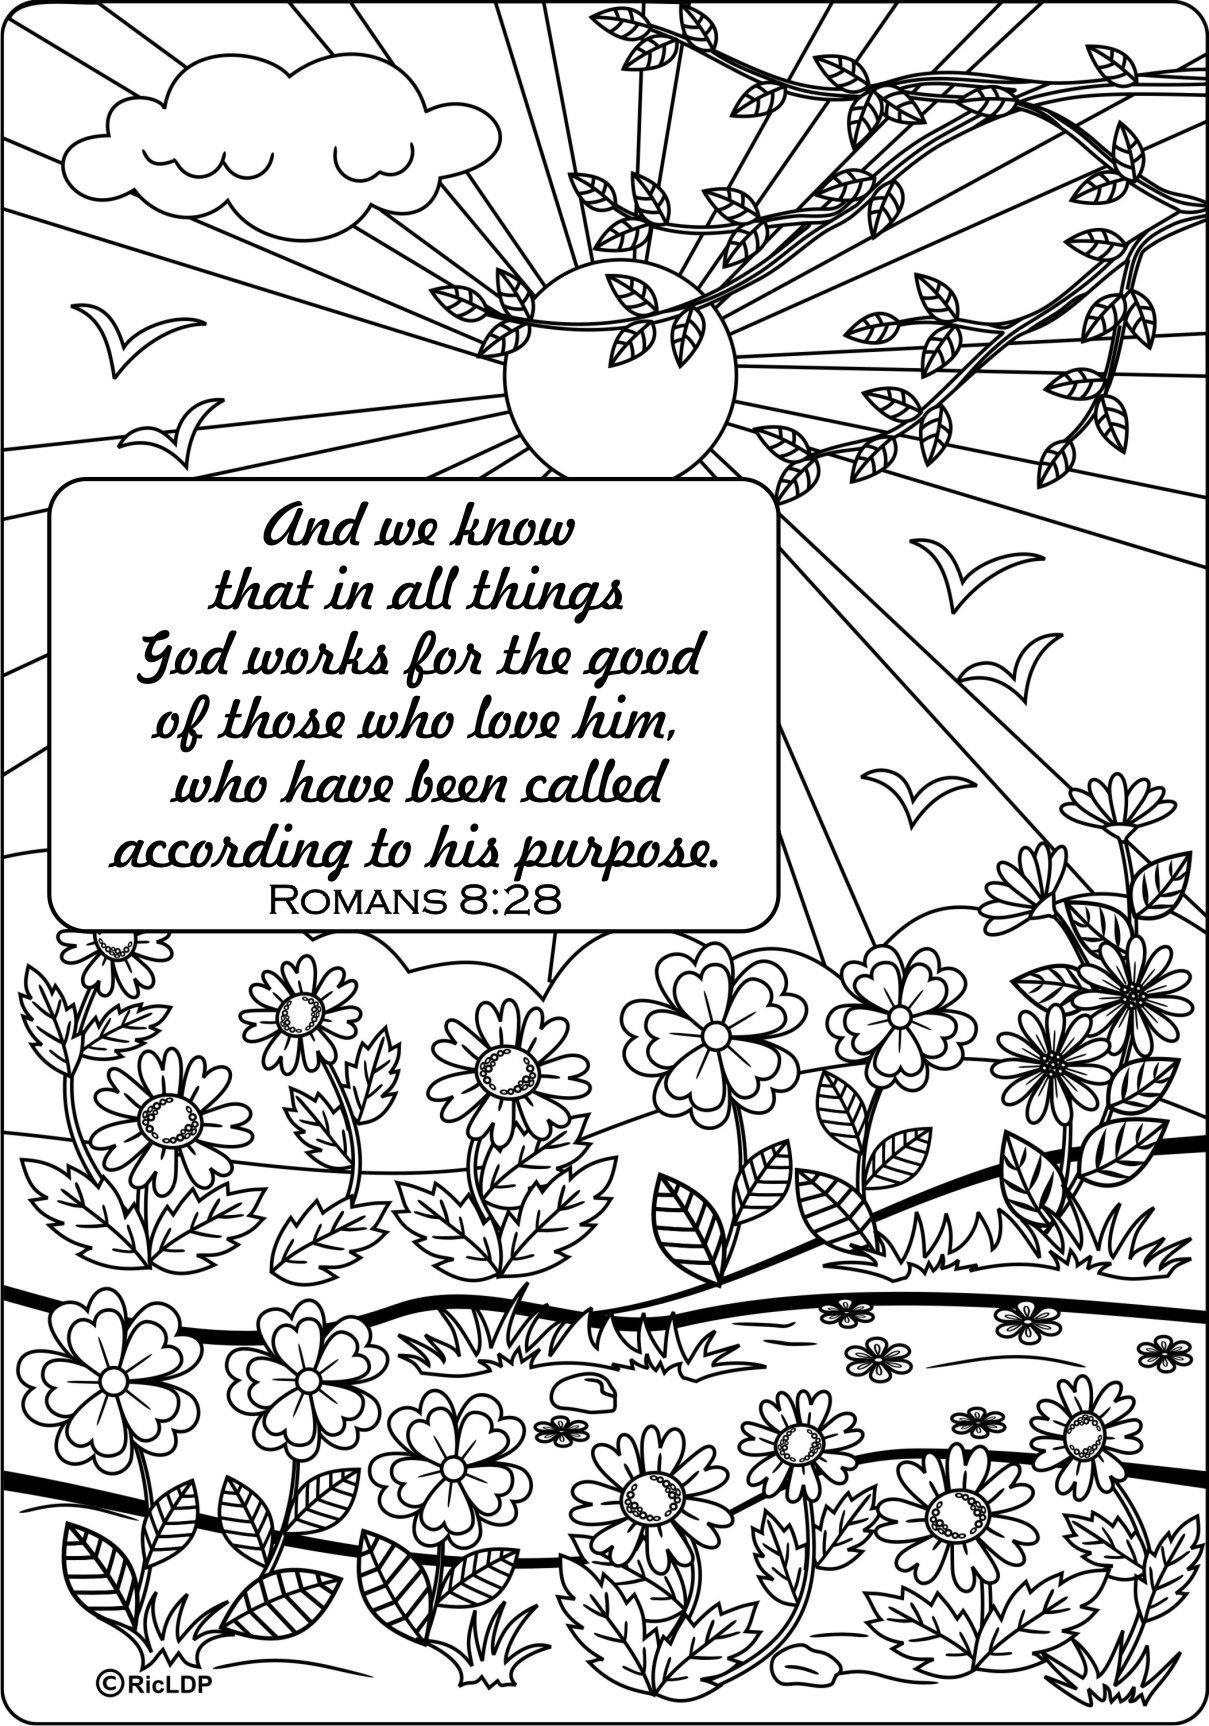 15 Bible Verses Coloring Pages   Pinterest   Roman, Bible and Sunday ...